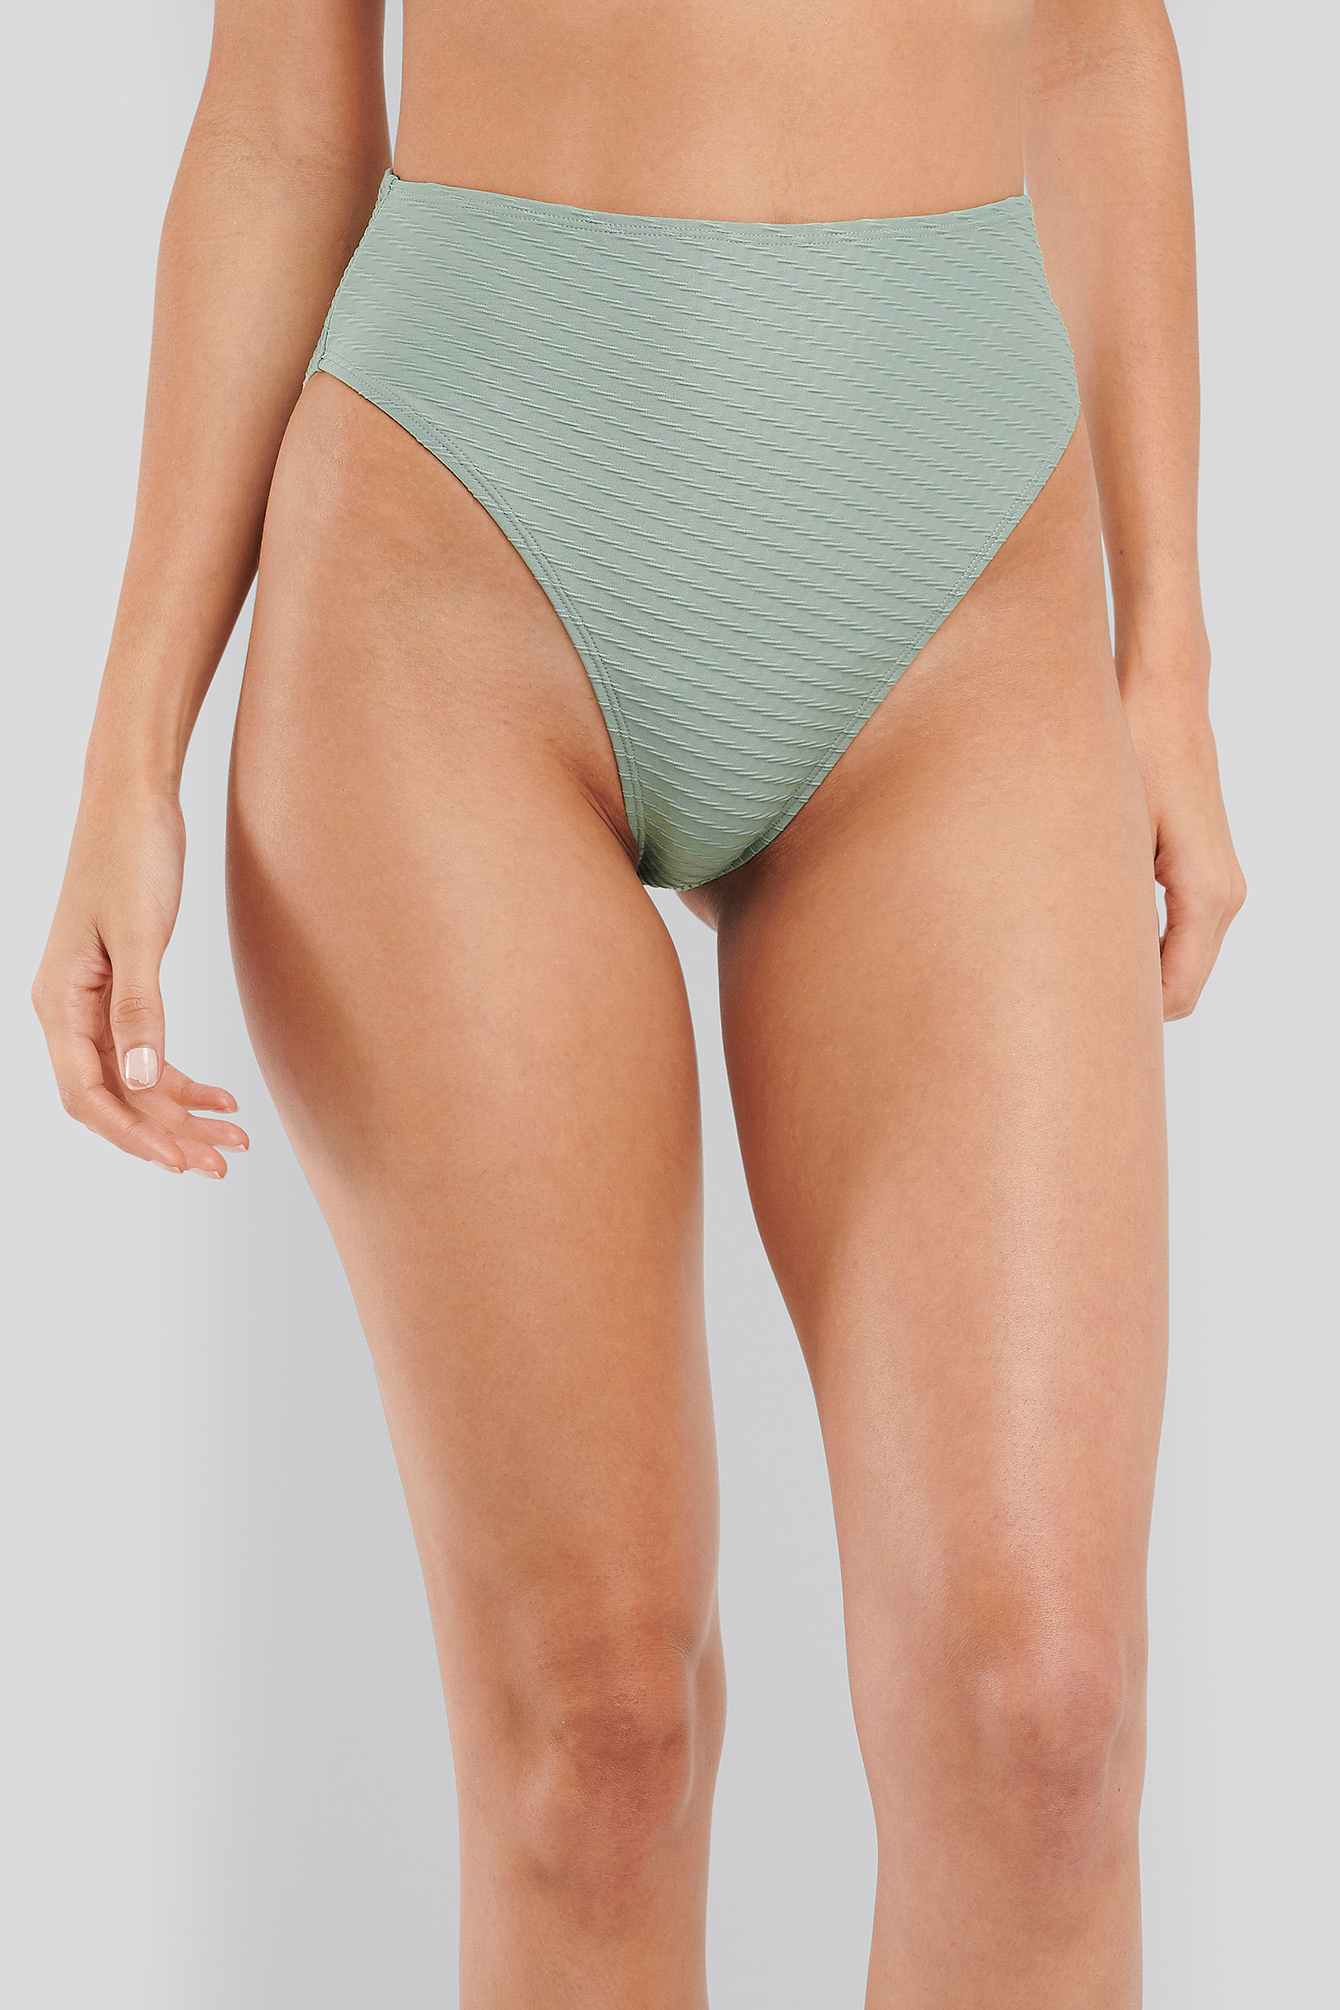 Dusty Green Structured High Waist Bikini Panty